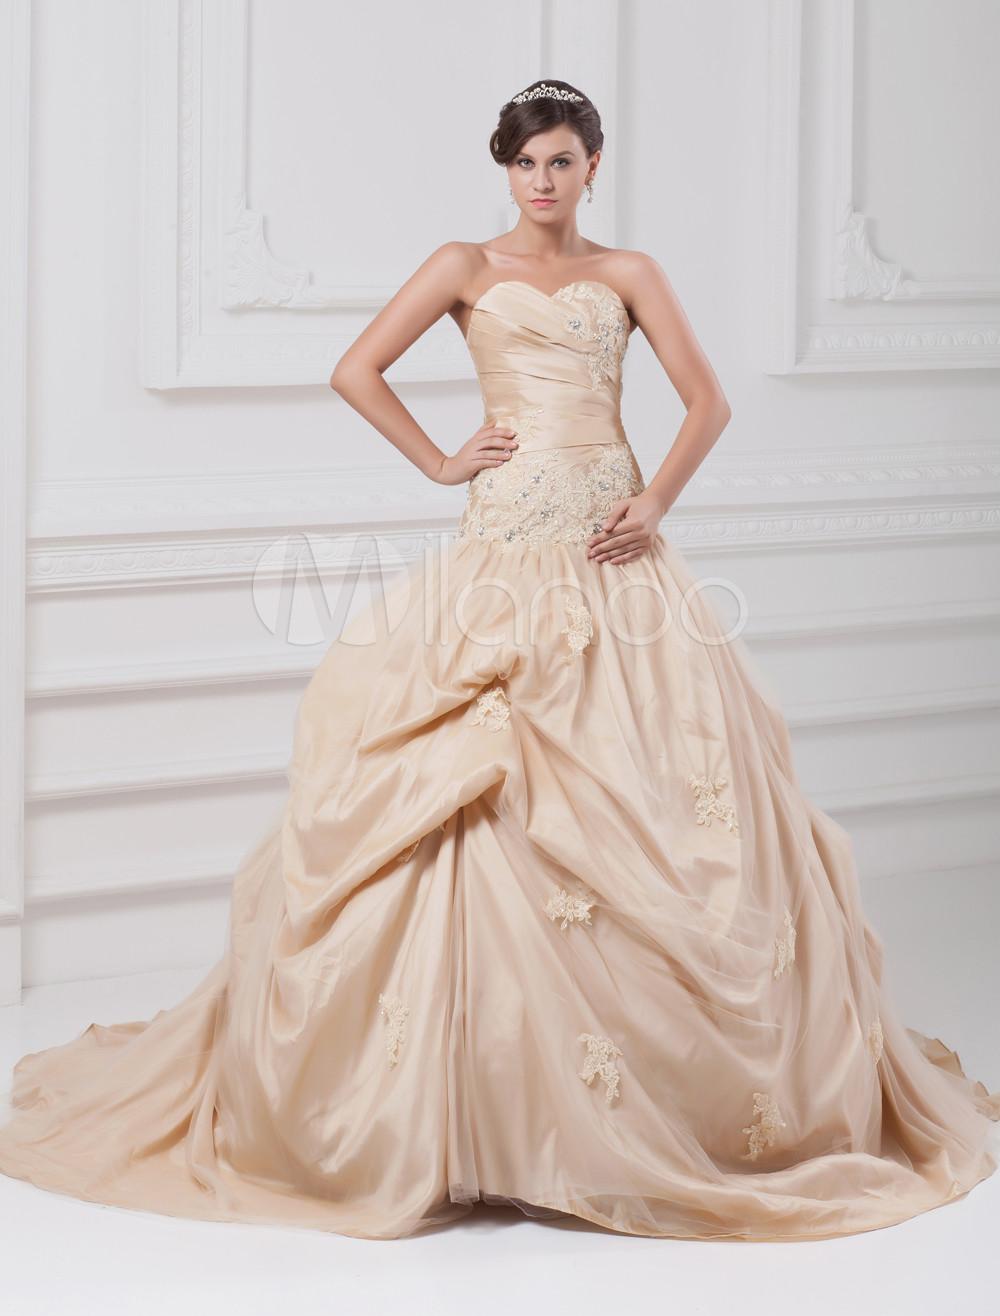 Ball Gown Strapless Rhinestone Champagne Bridal Wedding Dress with Sweetheart Neck